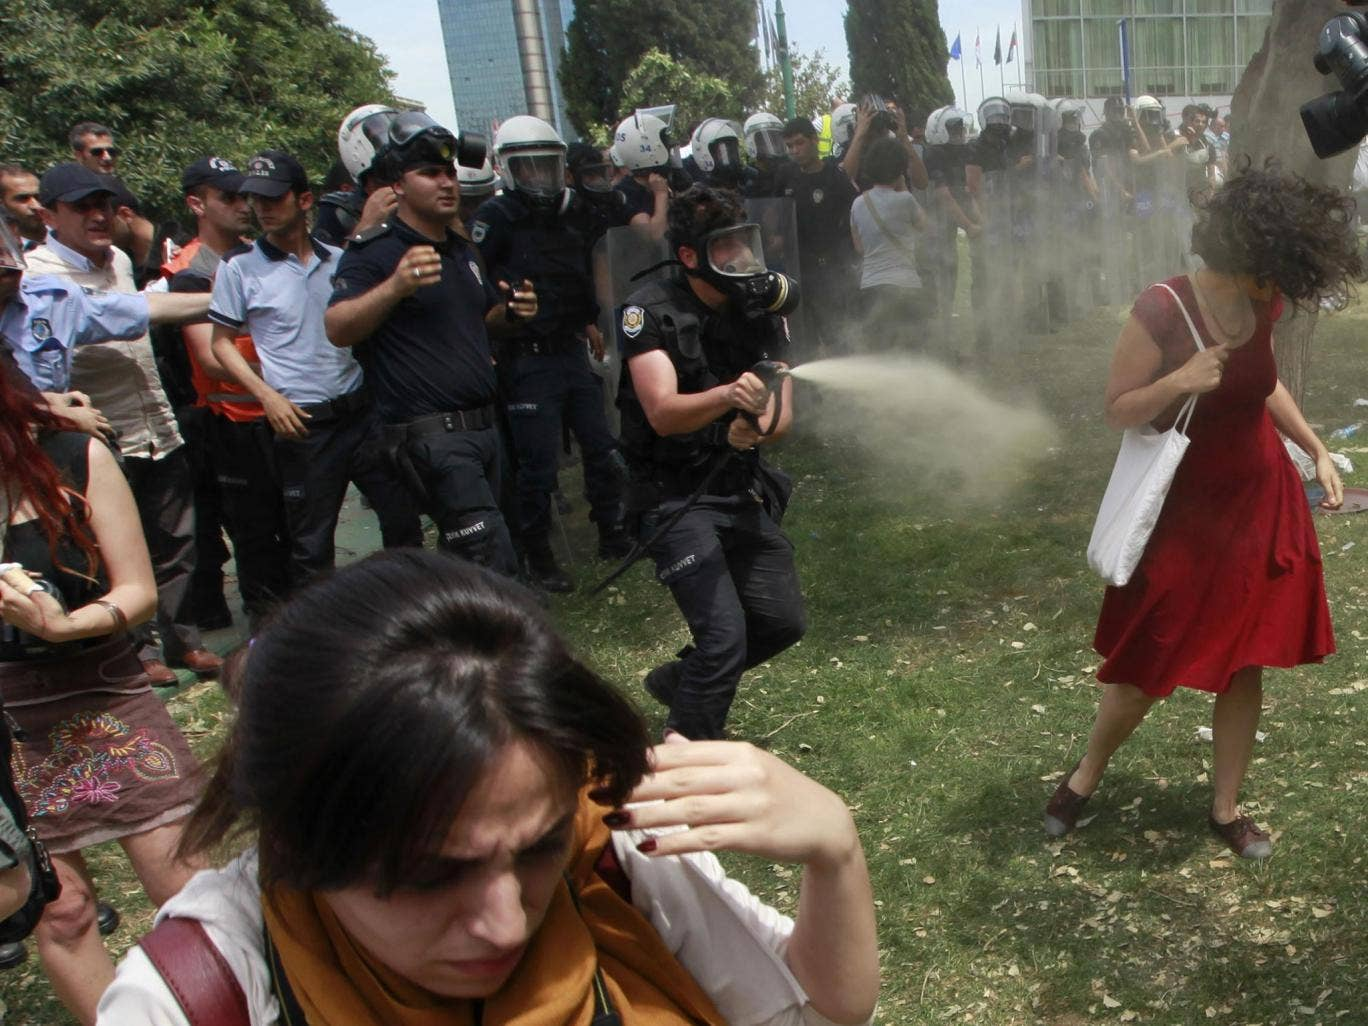 Endlessly shared on social media and replicated as a cartoon on posters and stickers, the image of the woman in red has become the leitmotif for female protesters during days of violent anti-government demonstrations in Istanbul.